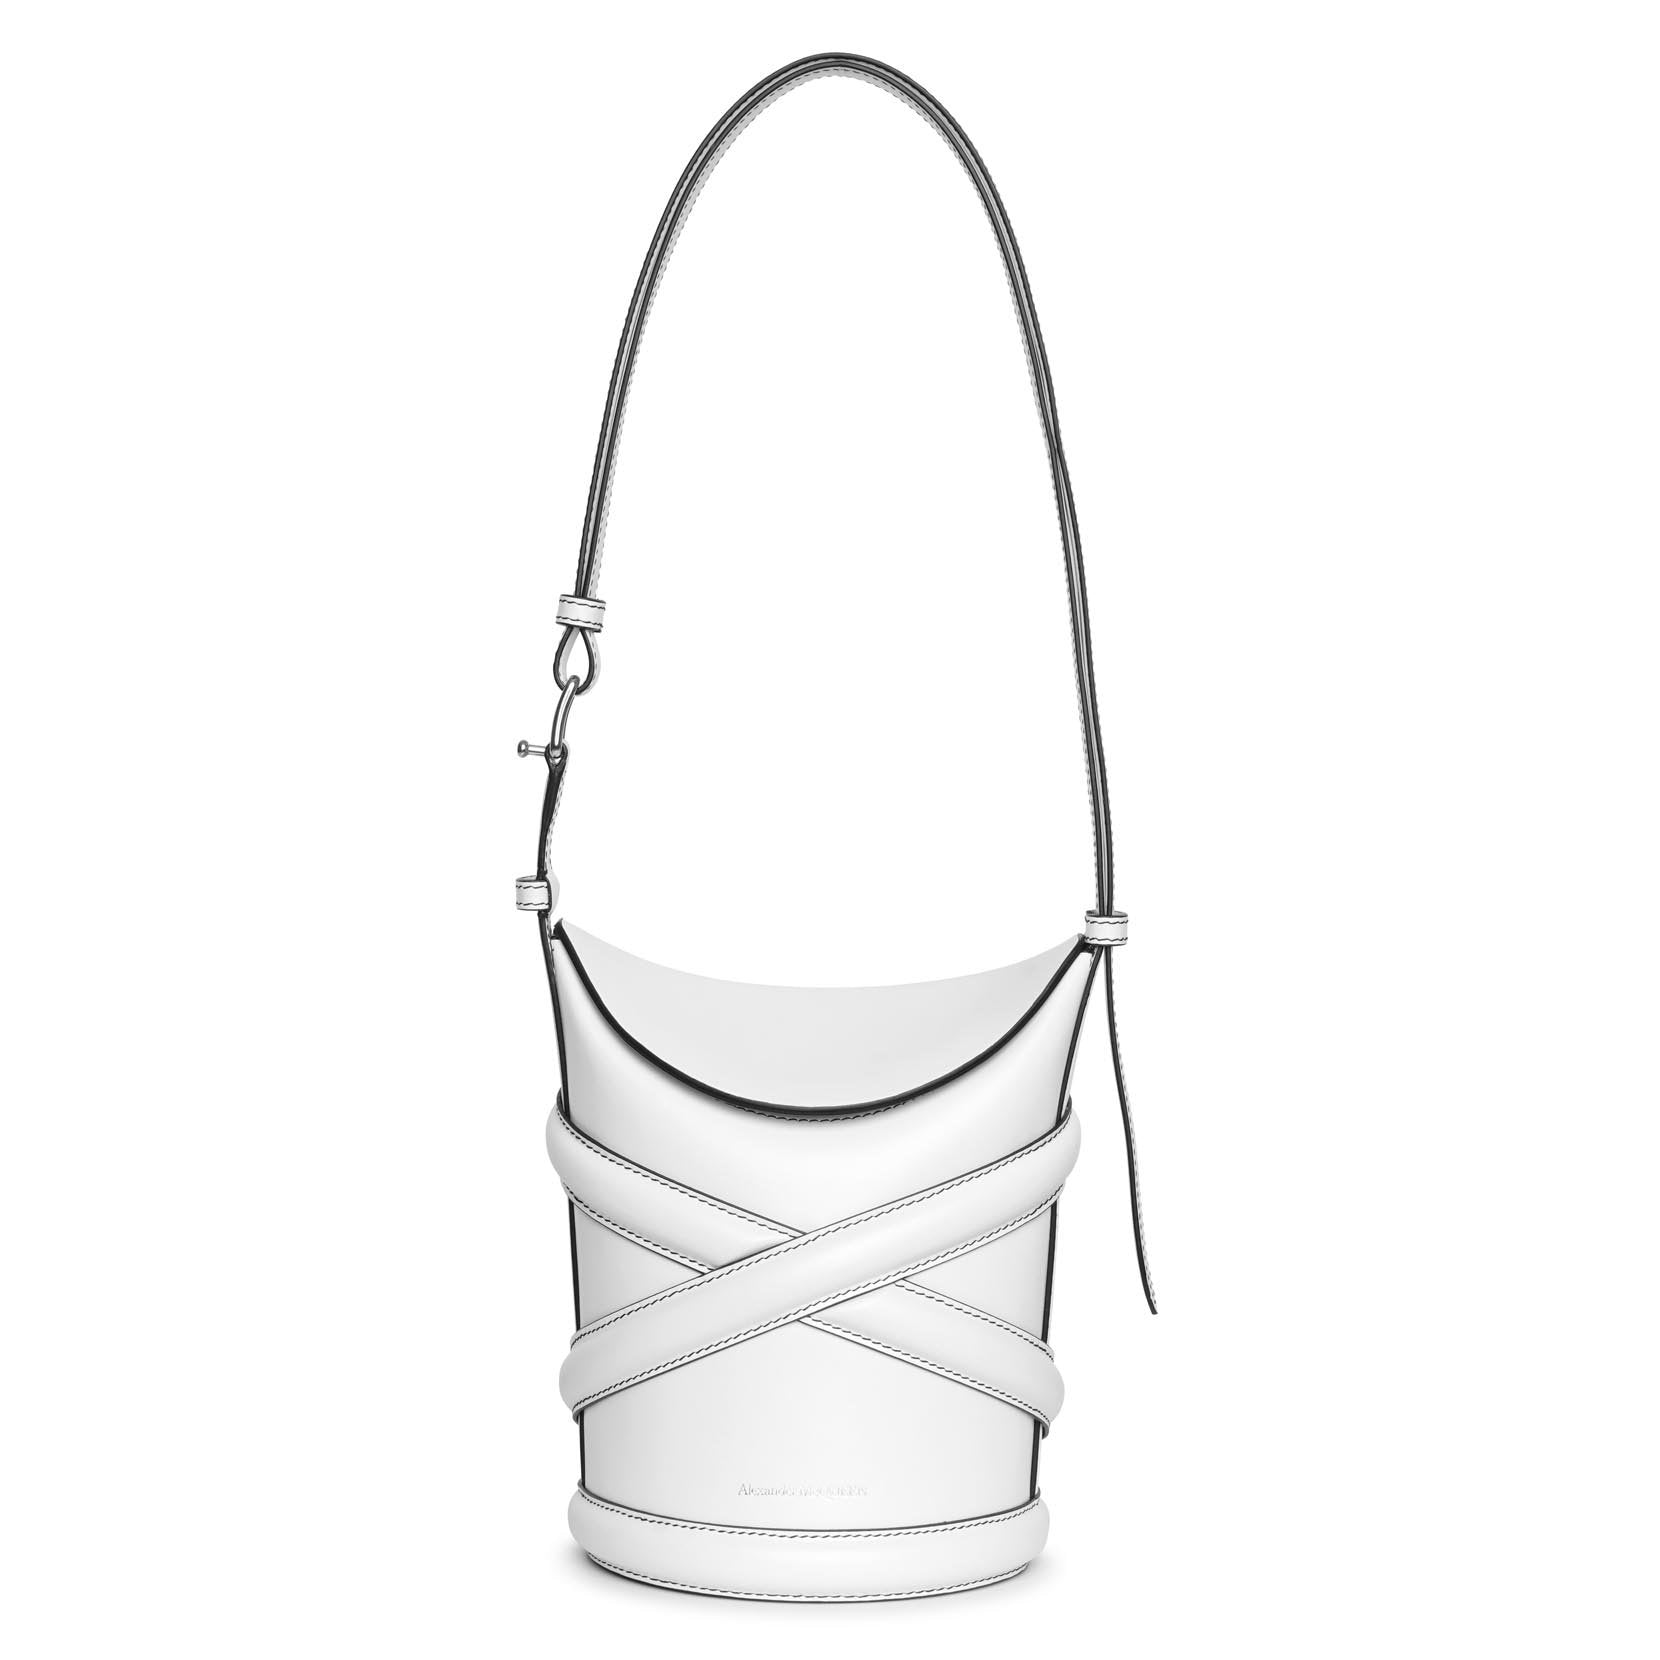 Alexander Mcqueen Leathers The Curve small leather bucket bag